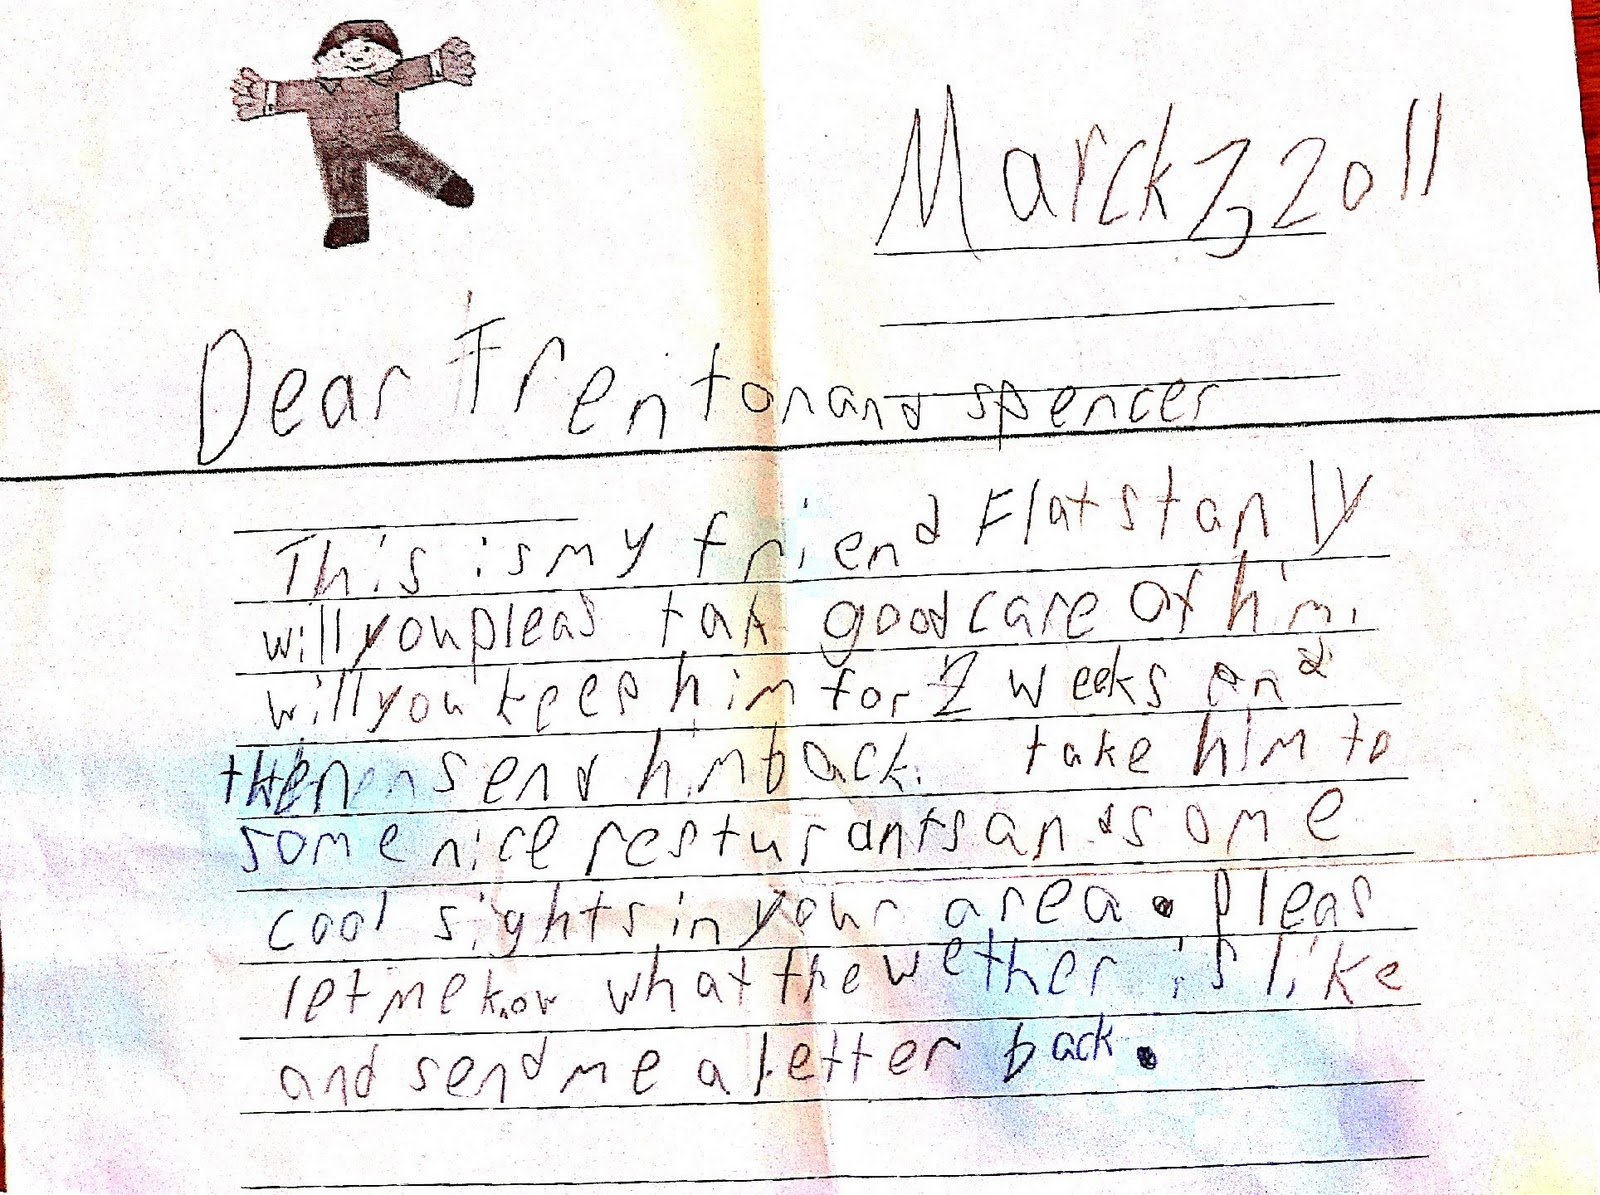 flat stanley letter please bring the final draft addresses if i